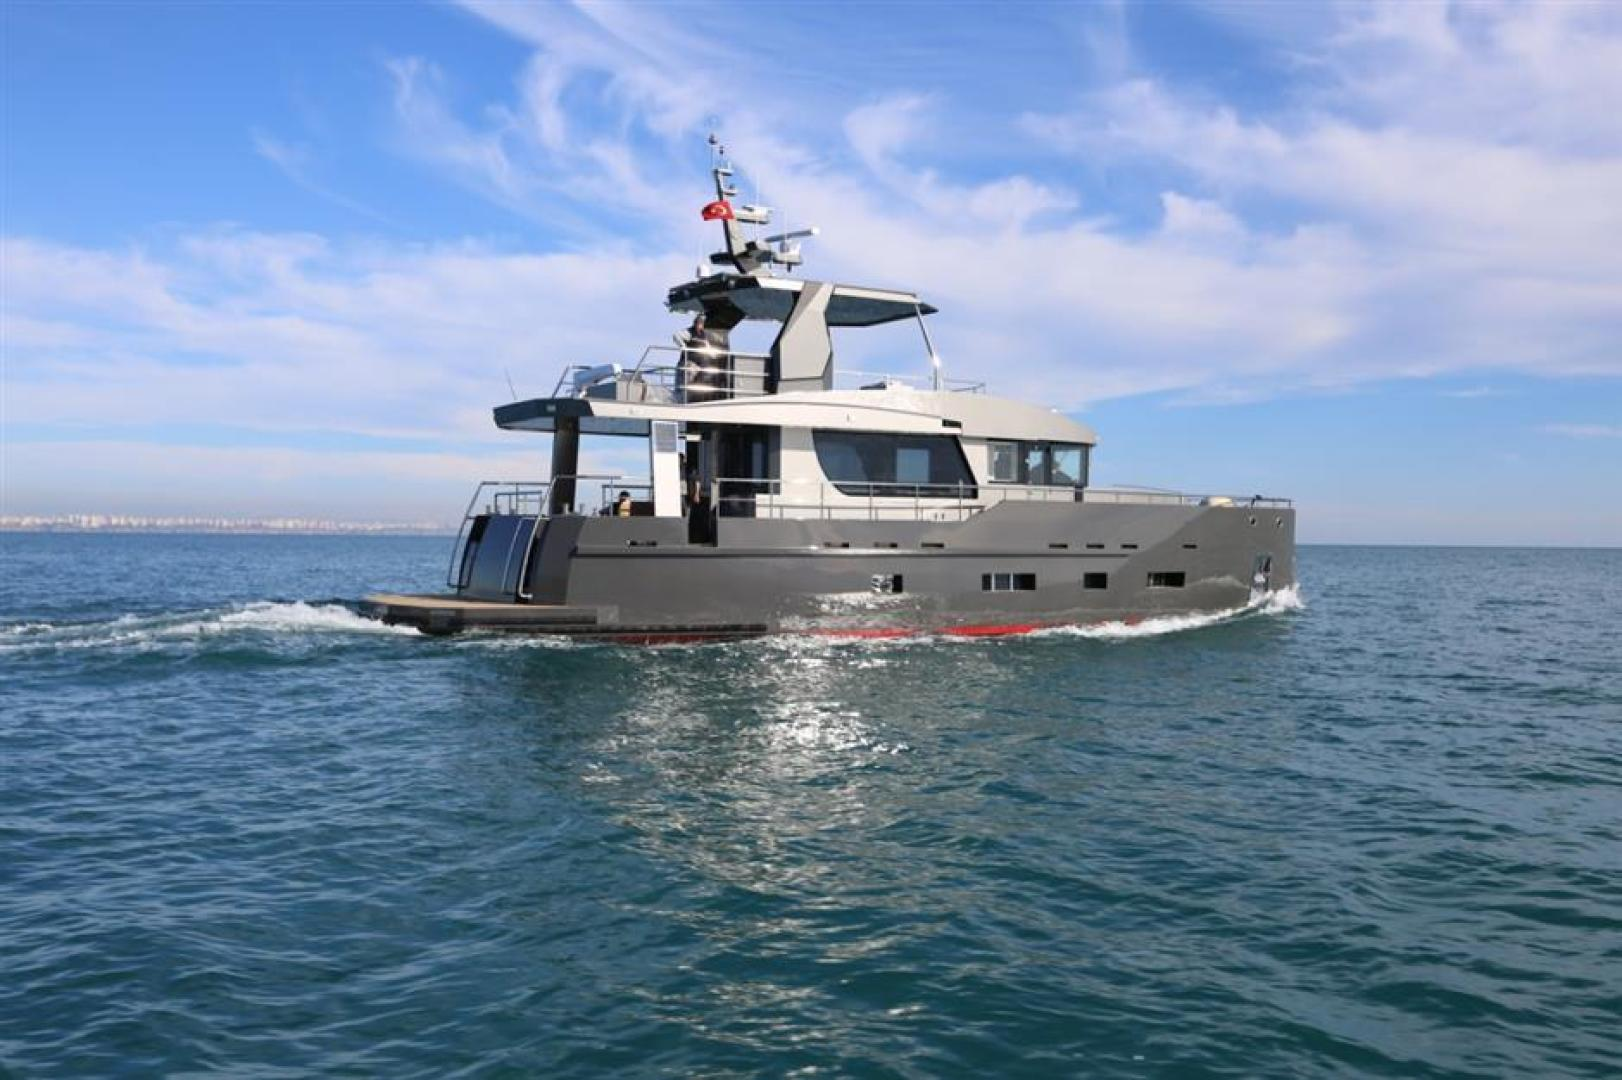 Bering-Expedition Yacht 2019-Expedition Yacht Turkey-1405172   Thumbnail